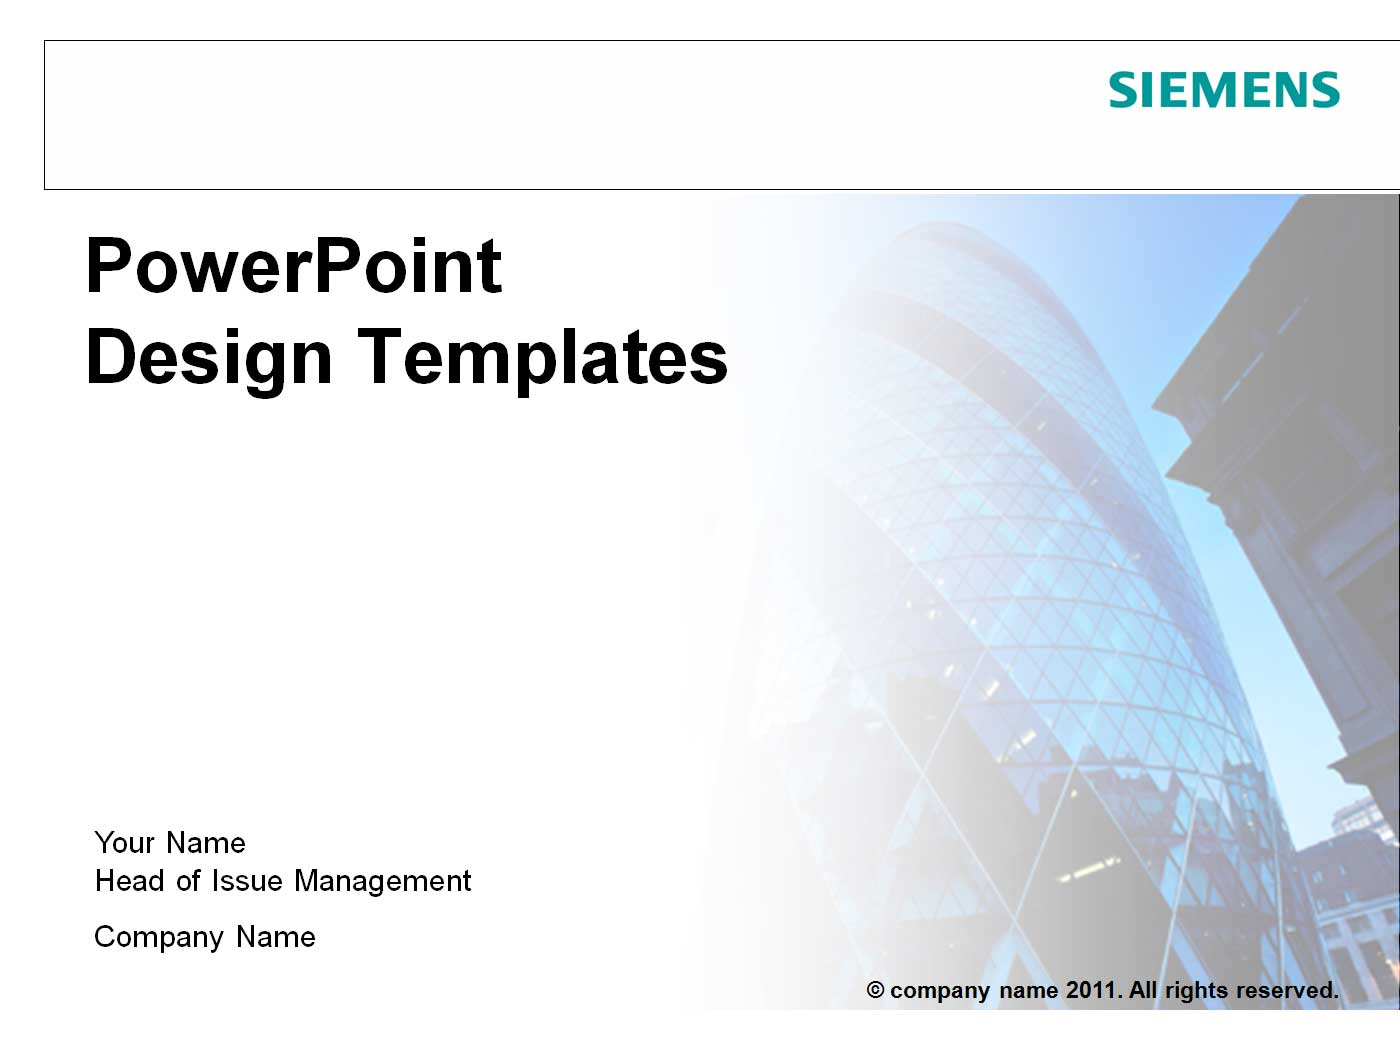 create a powerpoint template 2013 - gse.bookbinder.co, Presentation templates